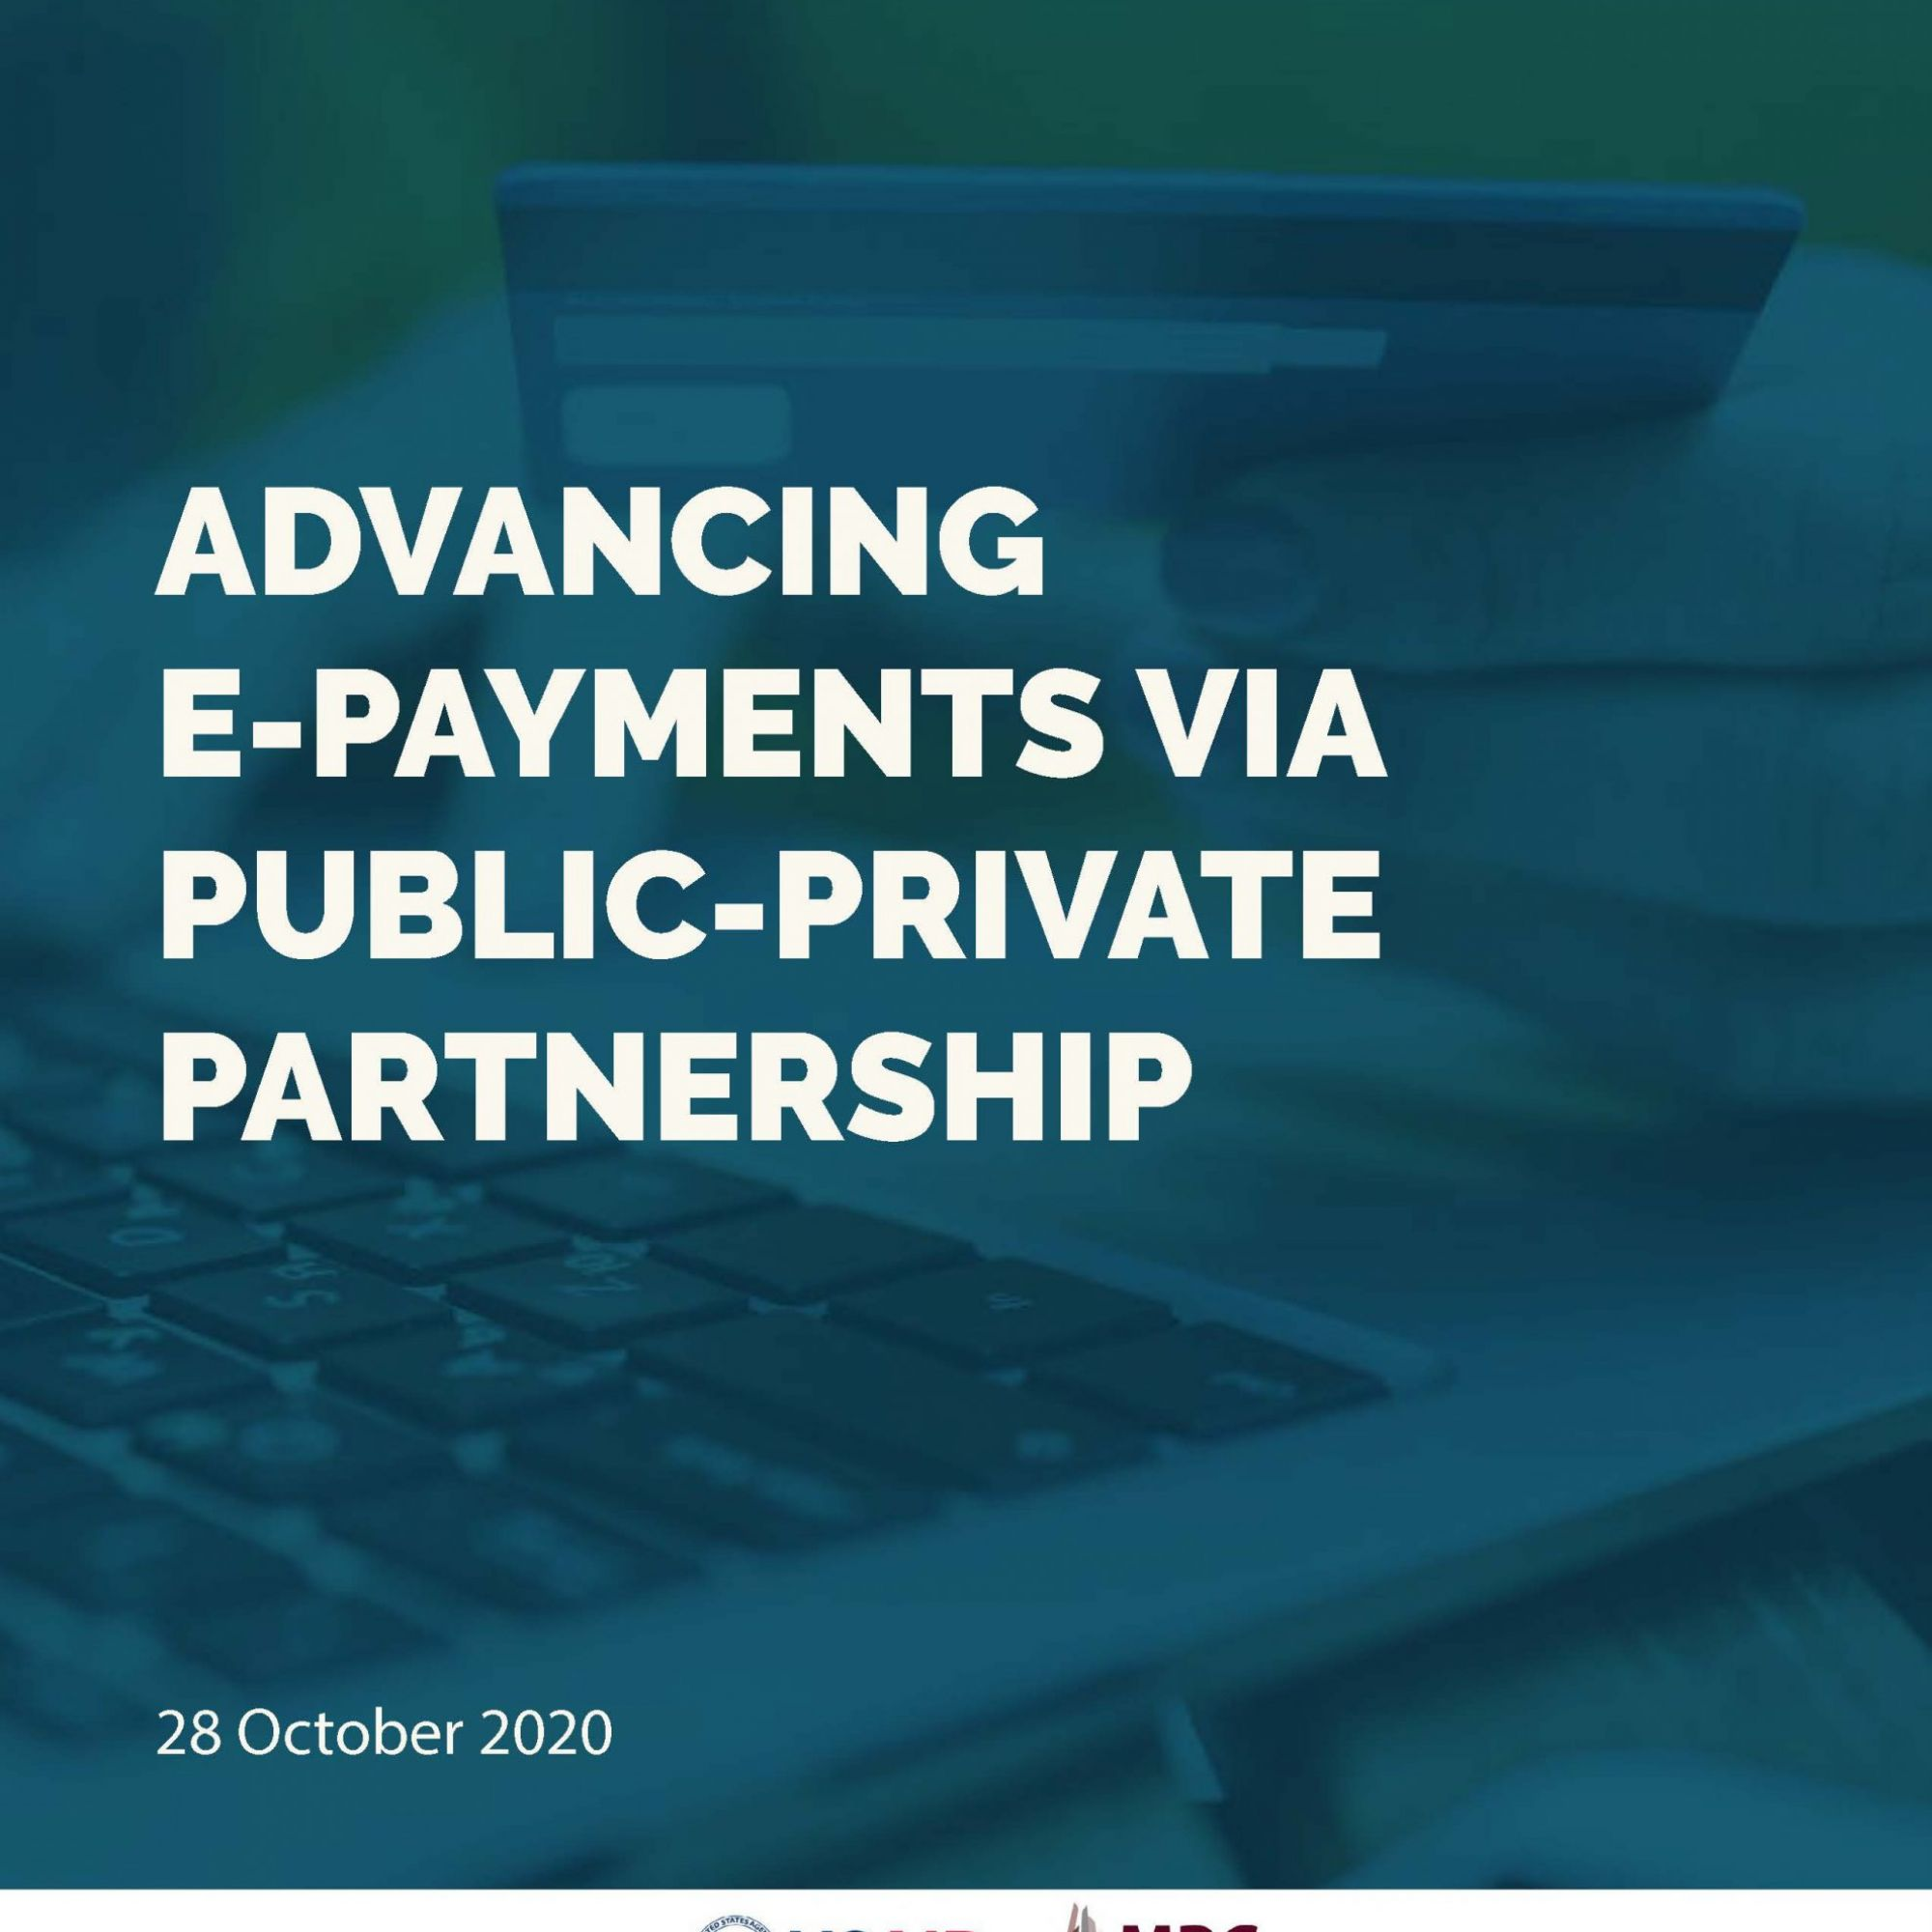 MBC Forum No. 20-2020 Advancing E-Payments Via Public-Private Partnership